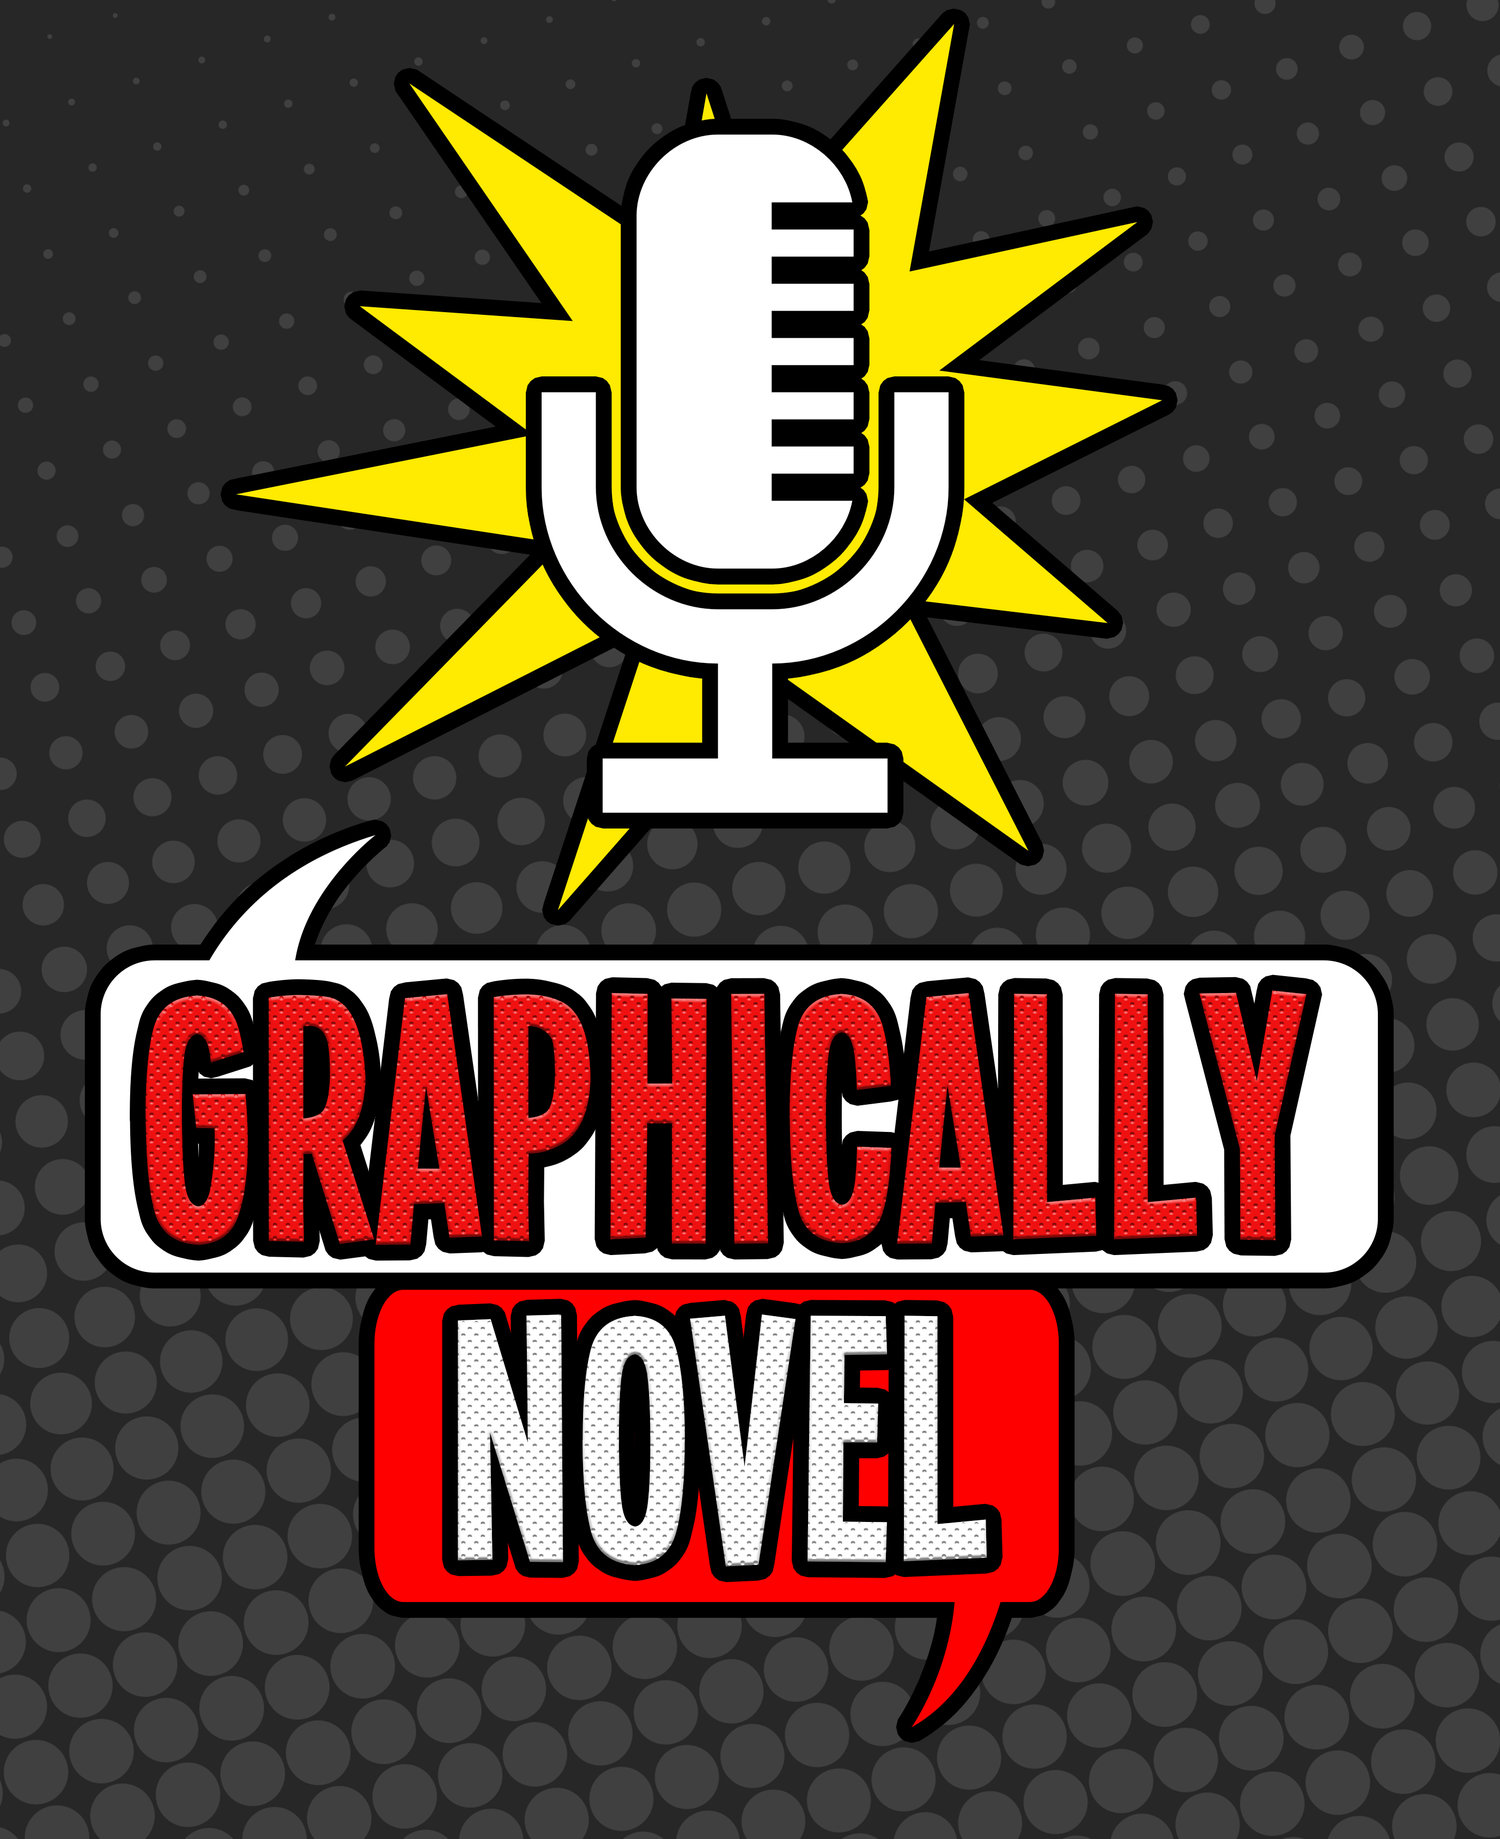 Graphically Novel